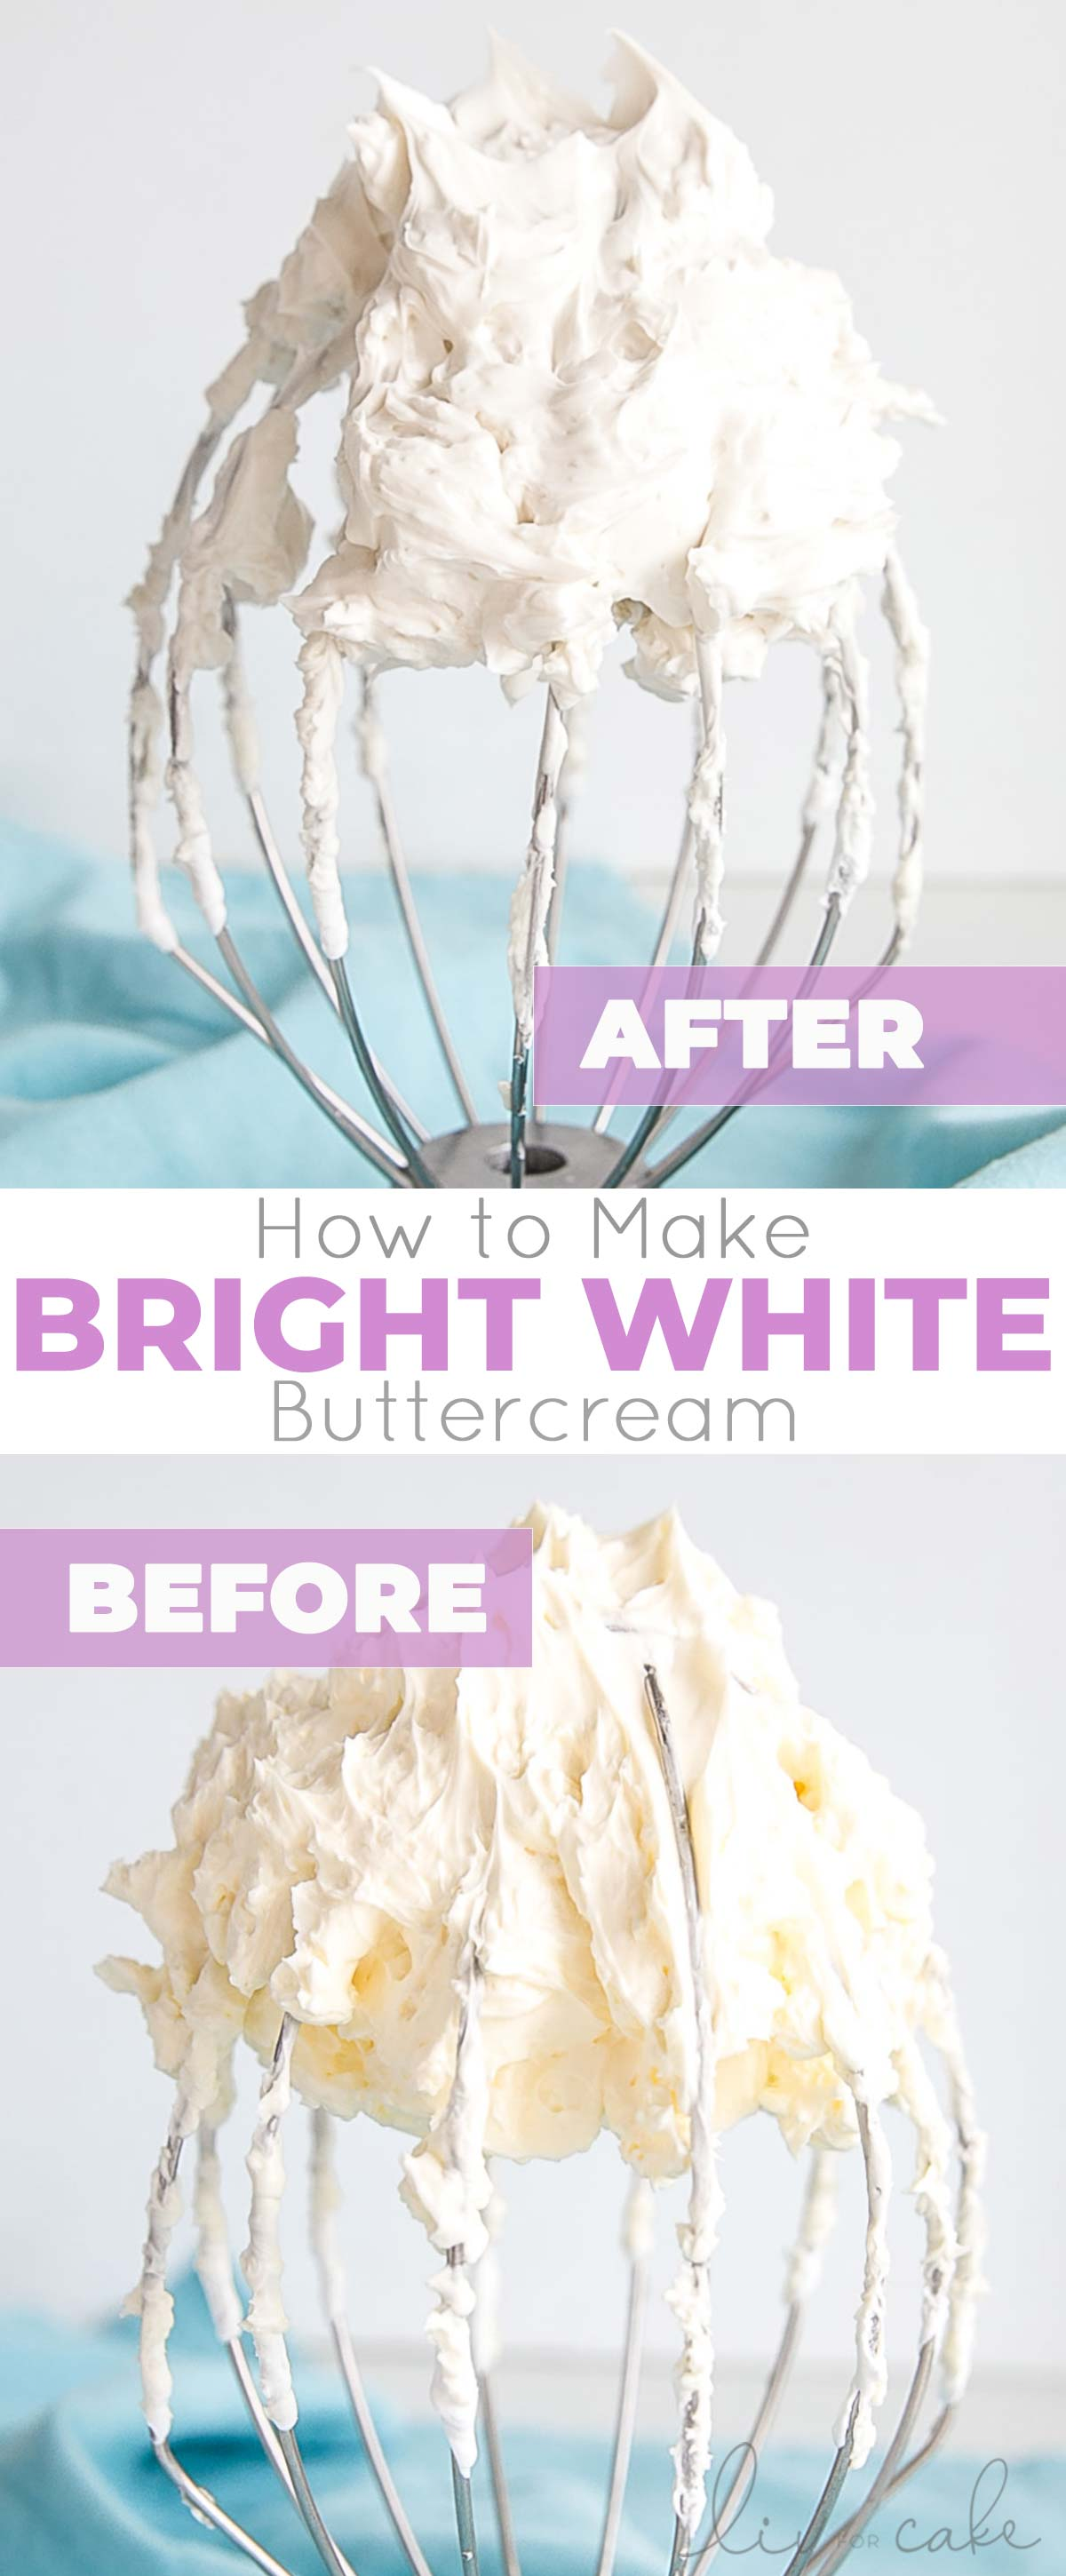 White buttercream photo collage.